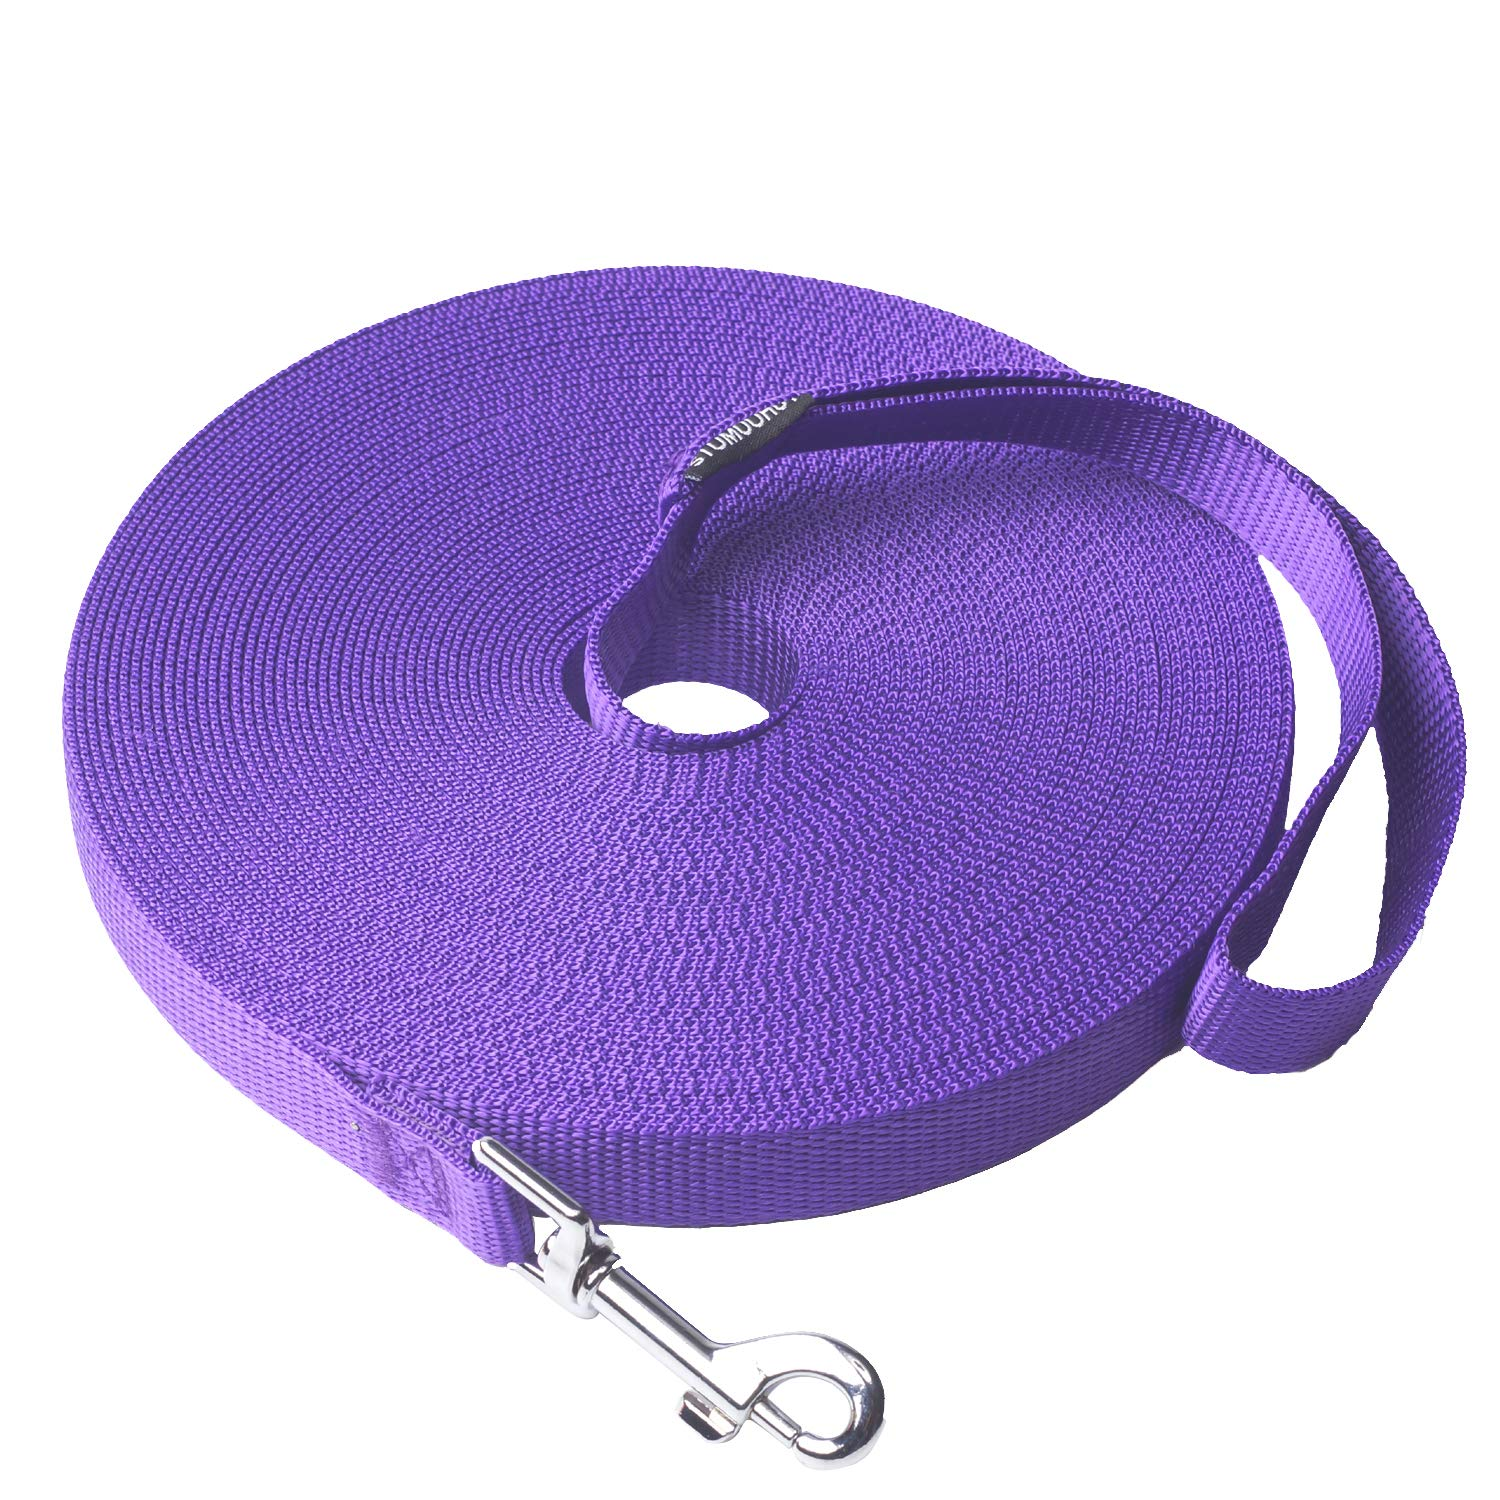 Siumouhoi Dog/Puppy Obedience Recall Training Agility Lead- 15ft 20ft 30ft 40ft 50ft Long Leash -for Training Leash, Play, Safety, Camping,or Backyard (50Feet, Purple) by Siumouhoi